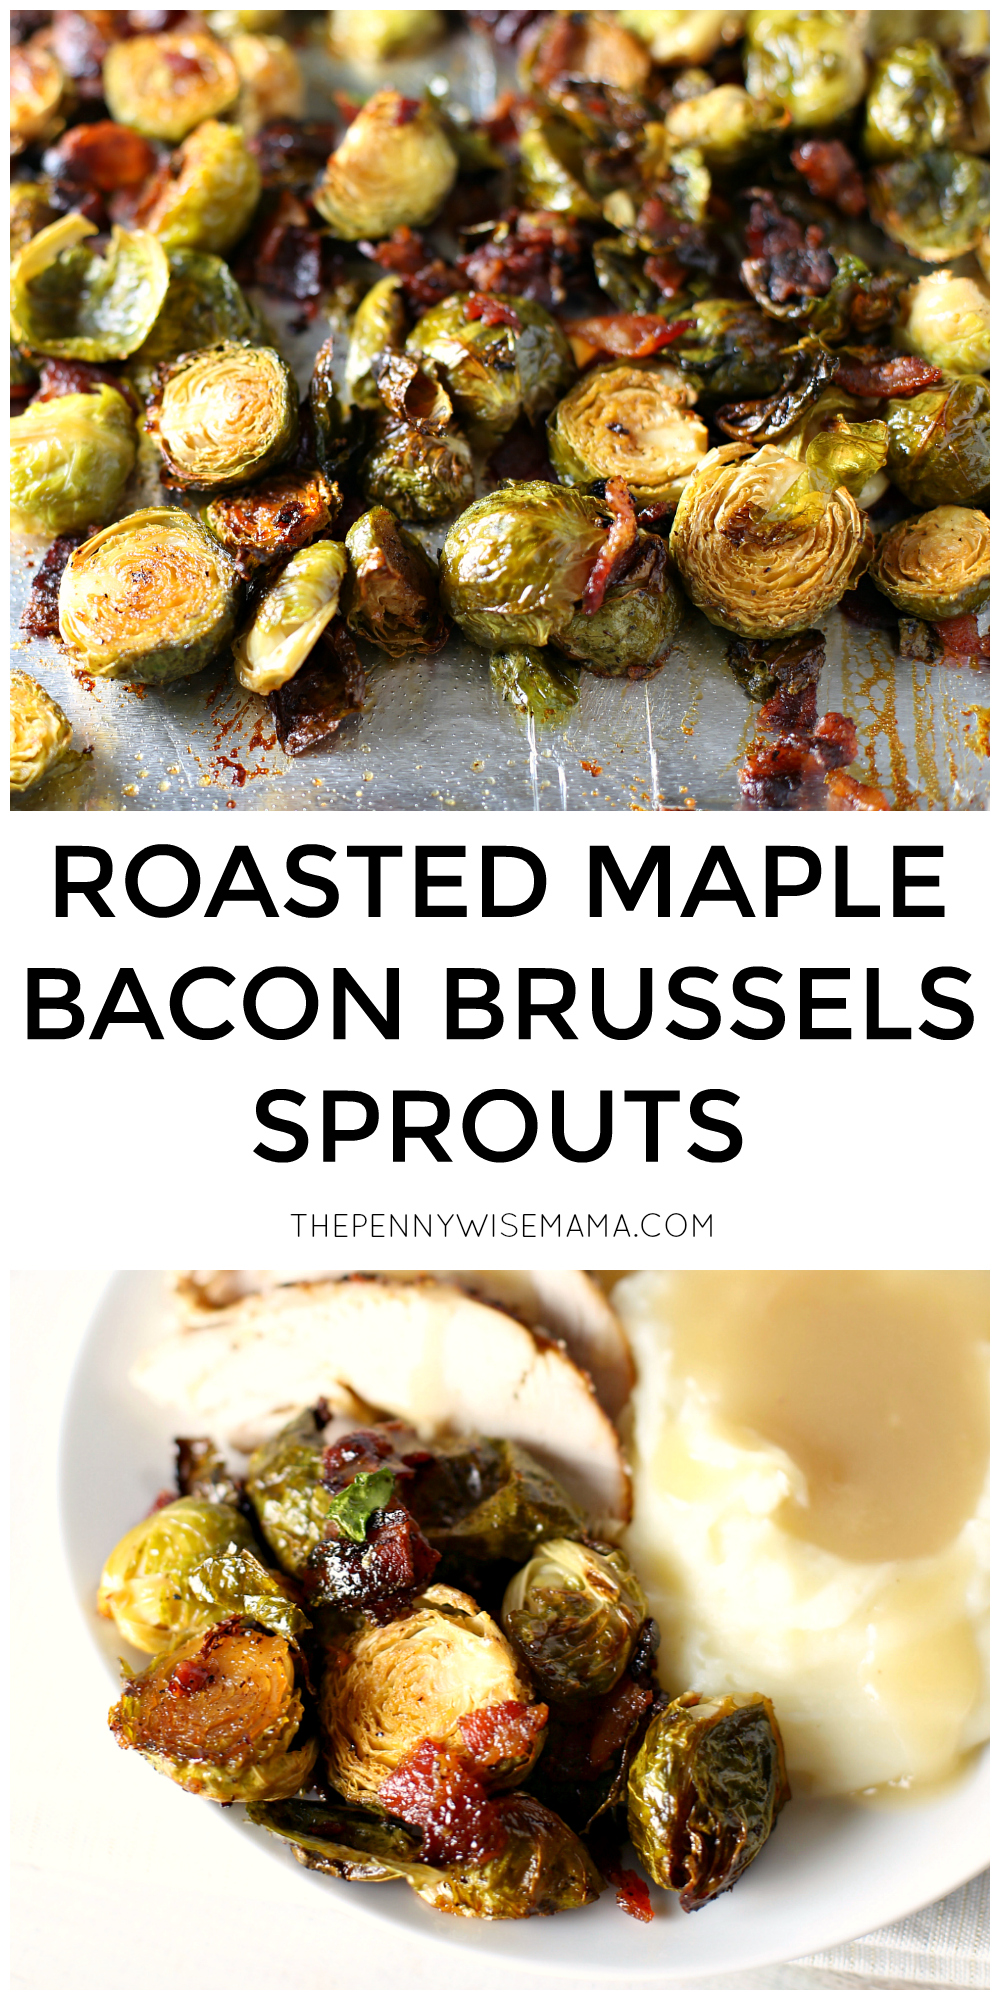 Roasted Maple Bacon Brussels Sprouts - an easy recipe for crispy, sweet and salty Brussels sprouts. Perfect for a holiday meal side dish!